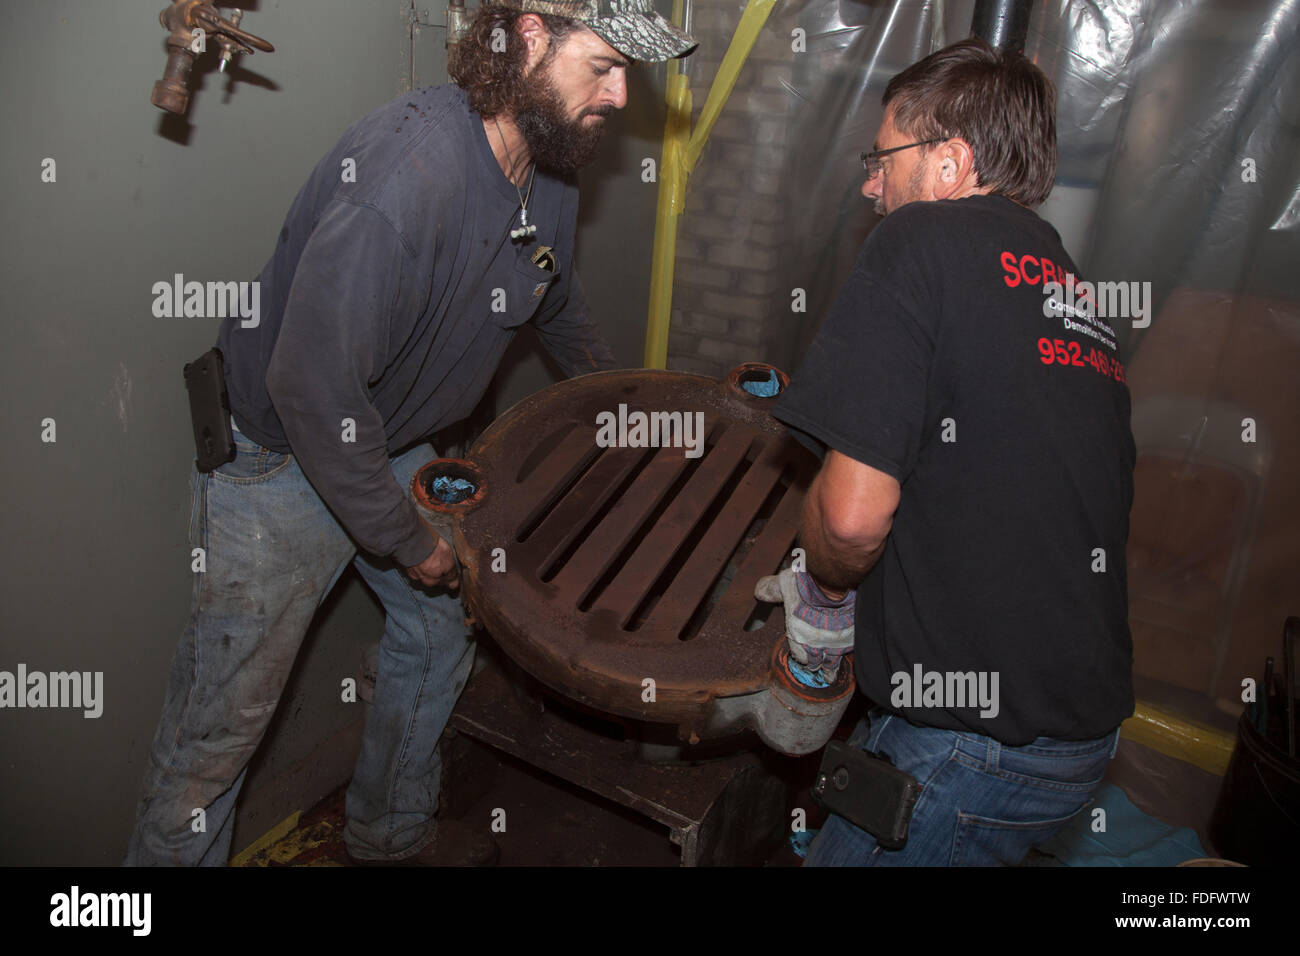 Water Boiler Furnaces Stock Photos Gravity Furnace Wiring Removing Parts Of Old From Basement For Replacement With A Modern Heat Pump